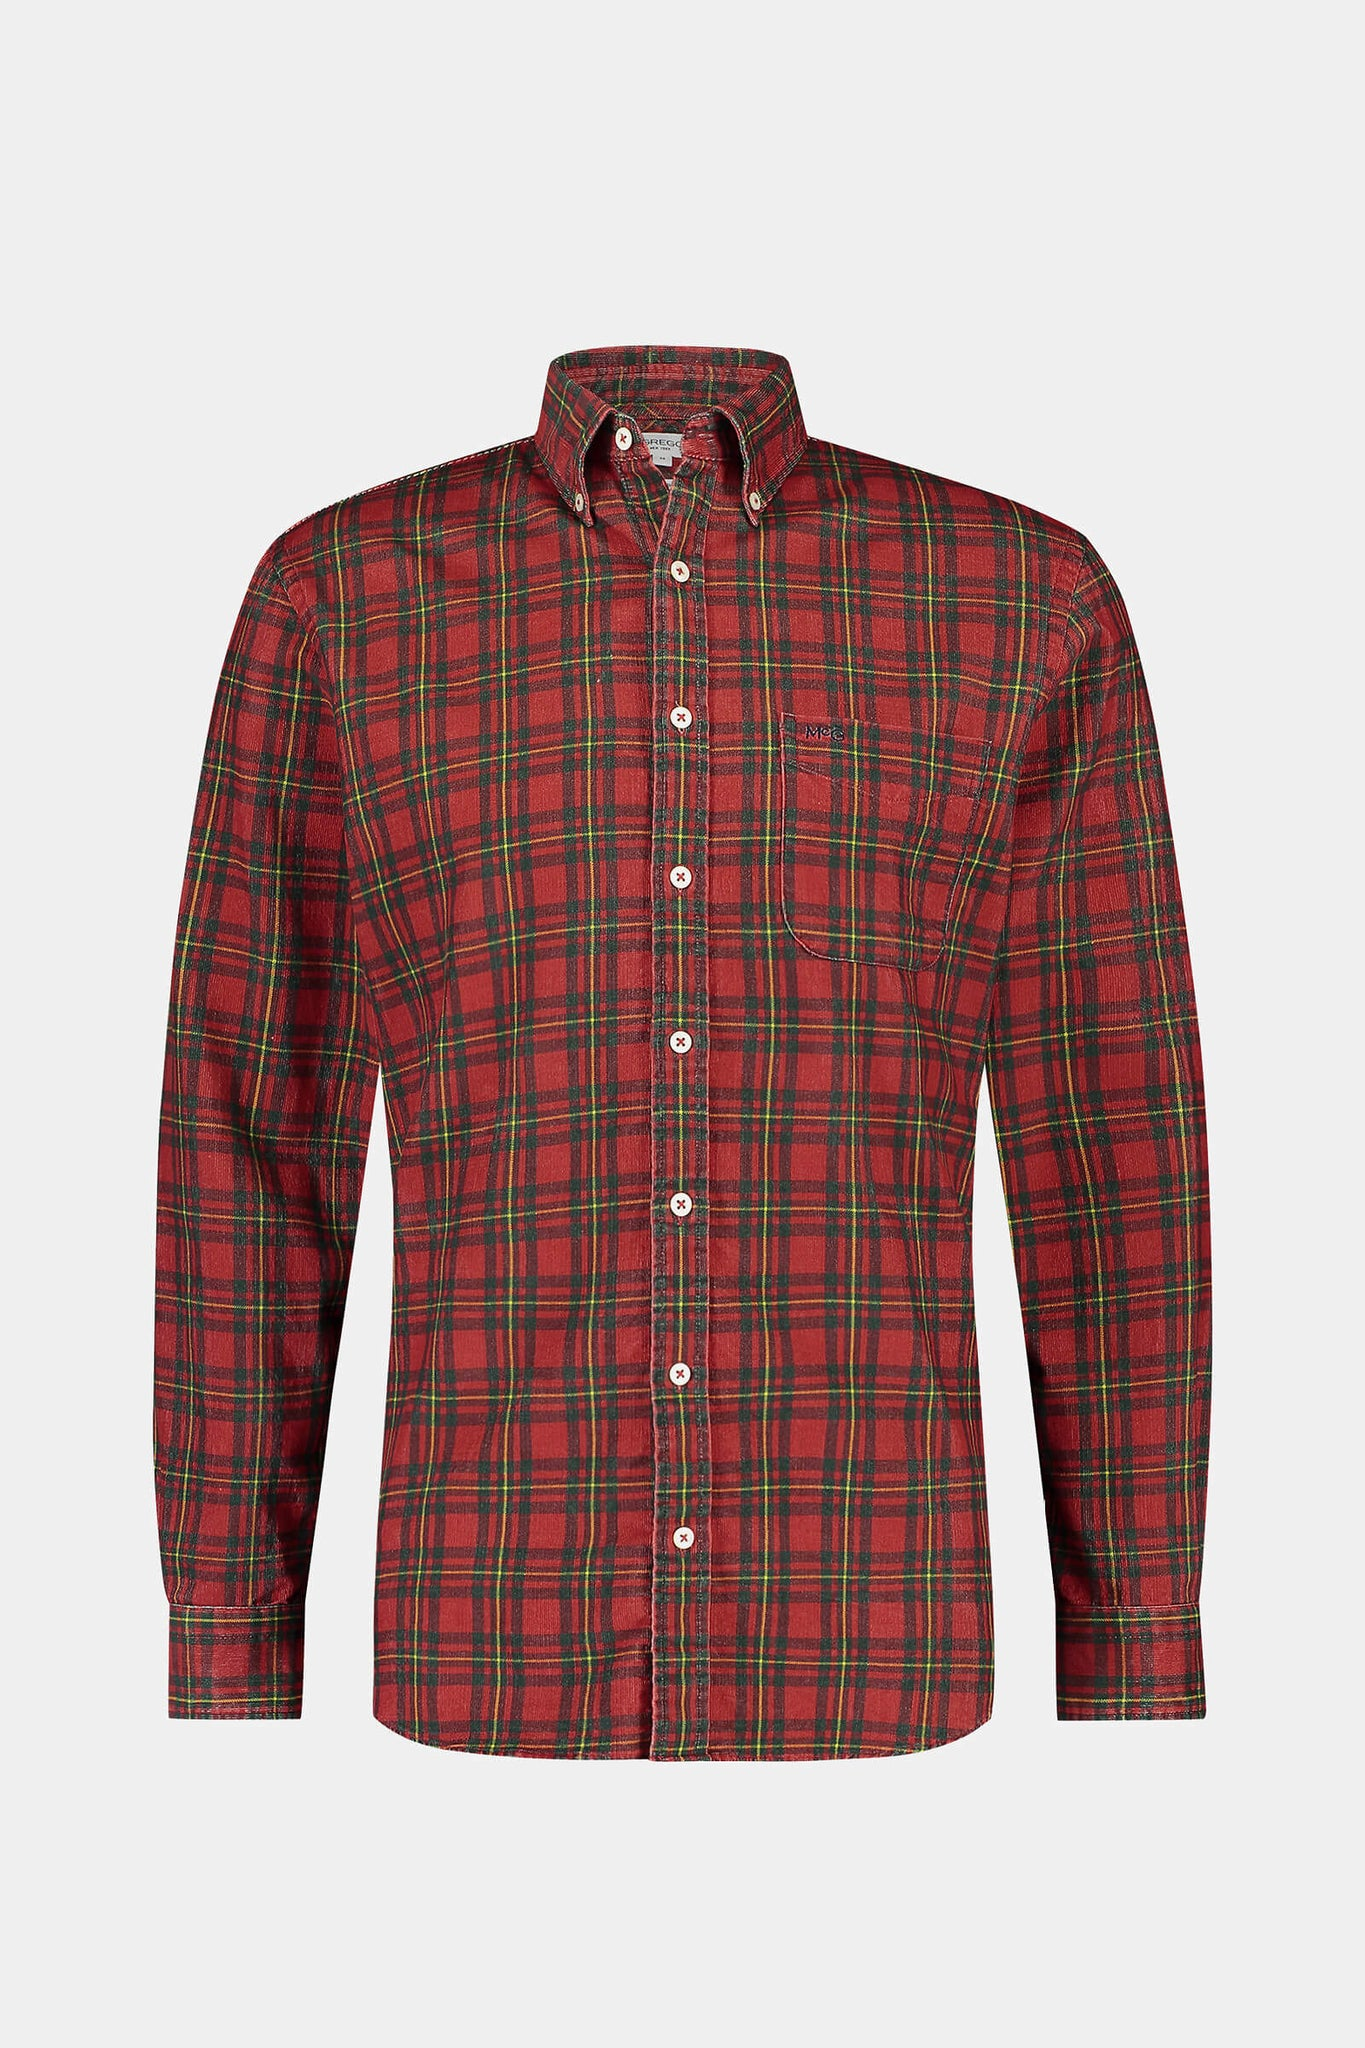 Regular fit Tartan Cord Shirt